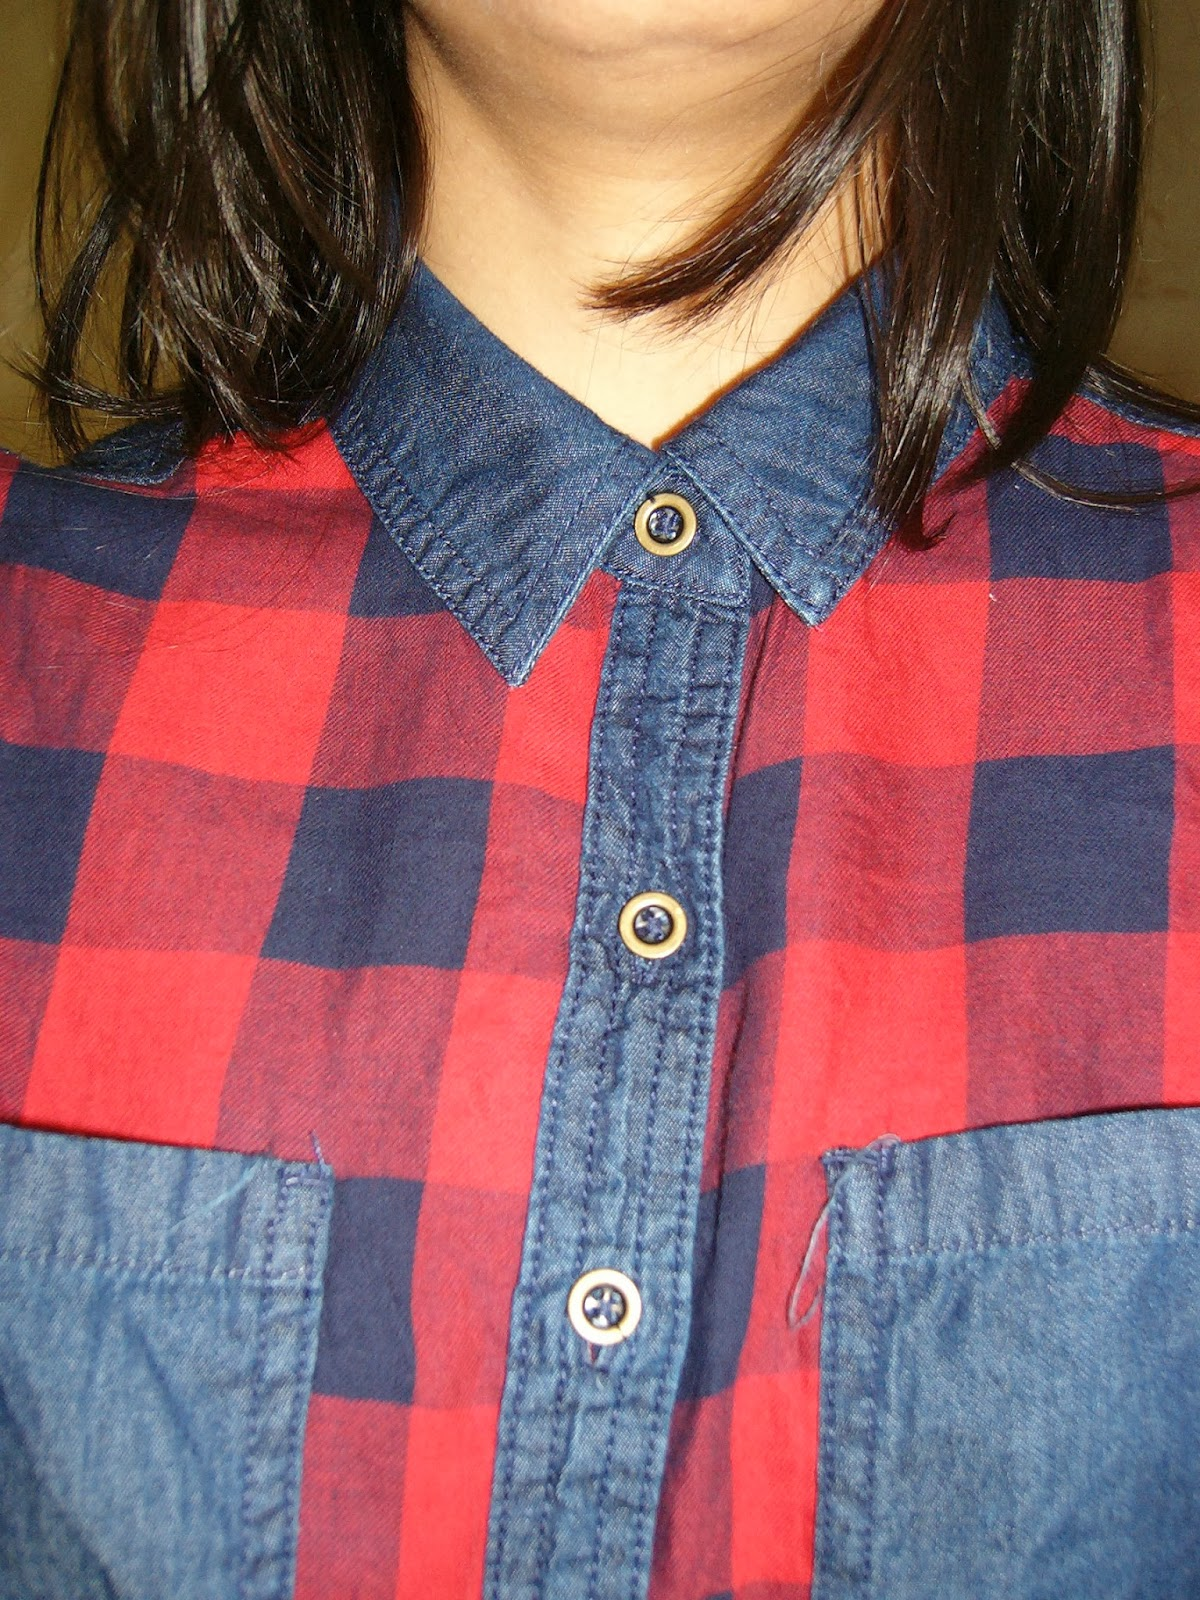 plaid shirt, tartan shirt, buttoned shirt, long sleeves shirt, how to wear denim